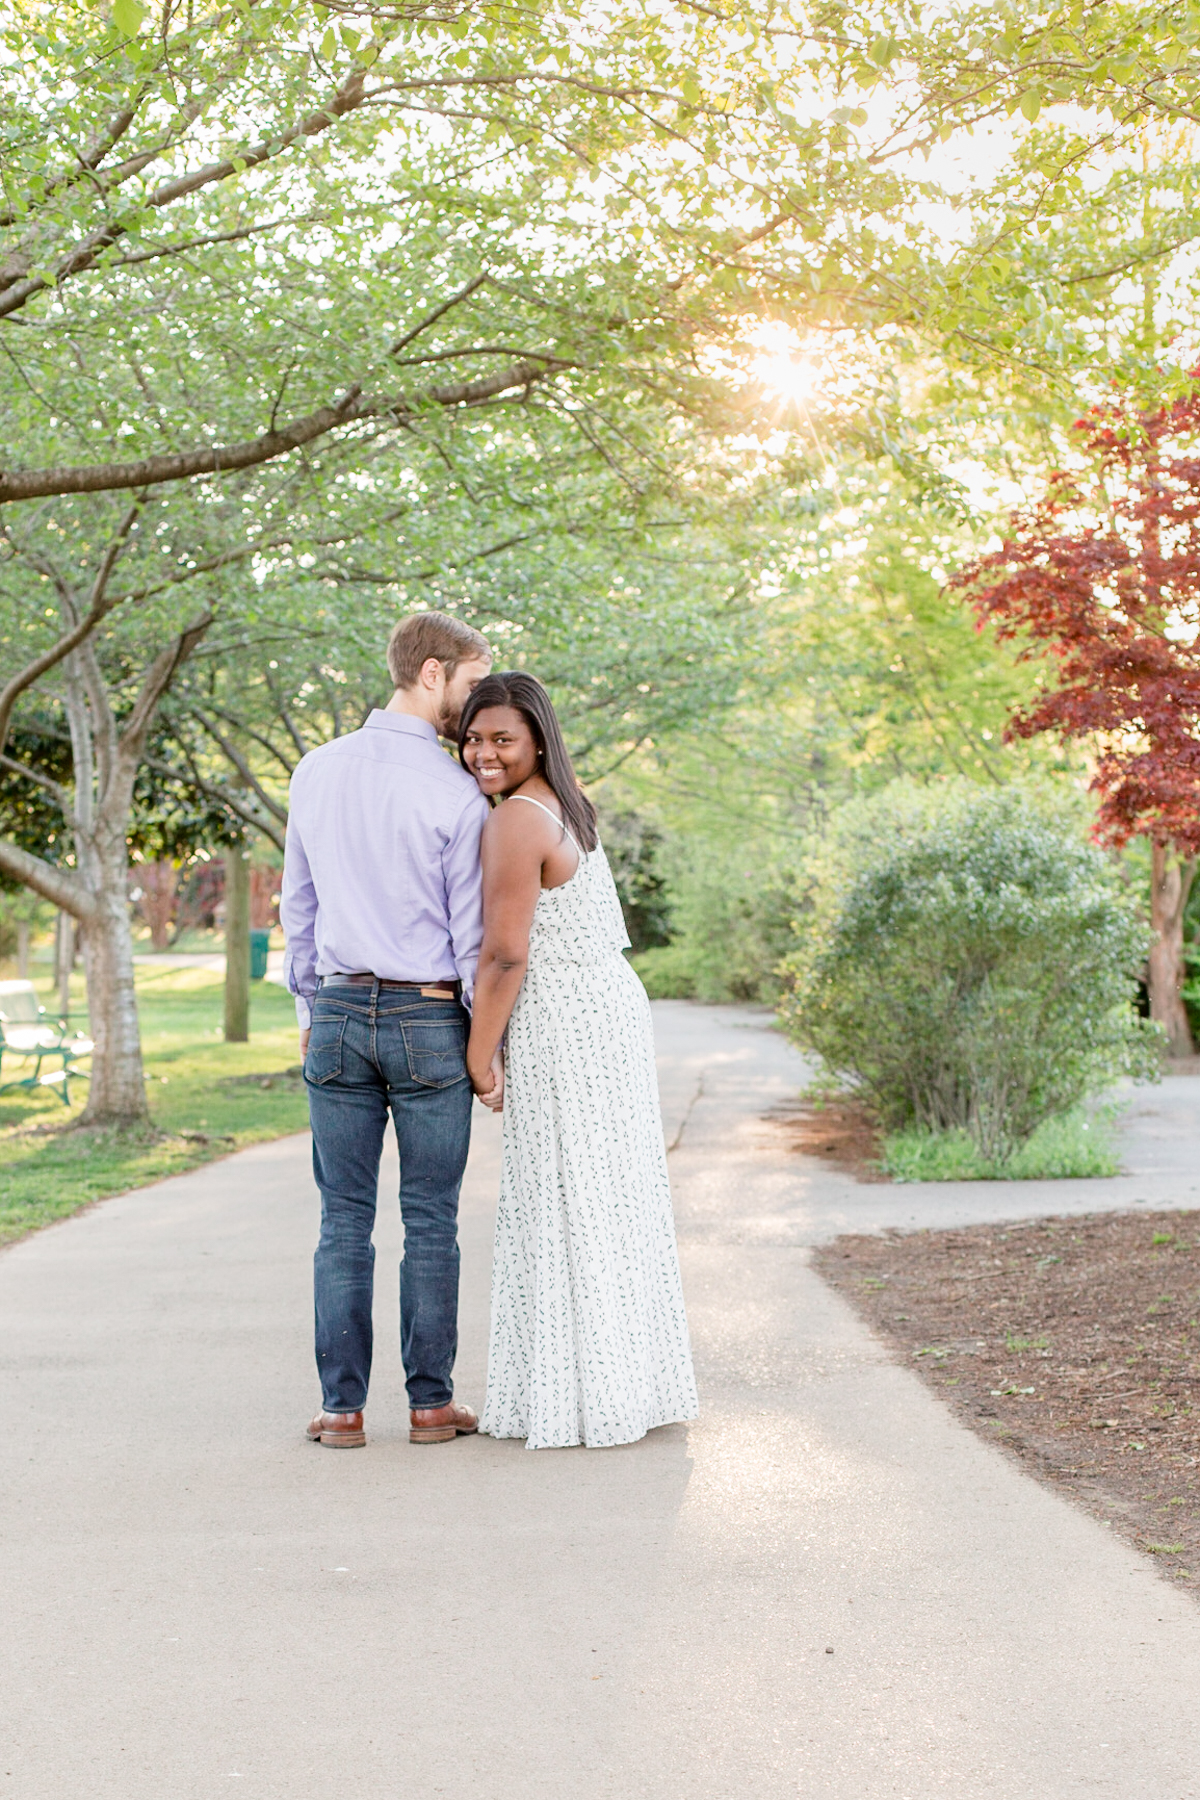 centennial-spring-nashville-engagement-session.jpg